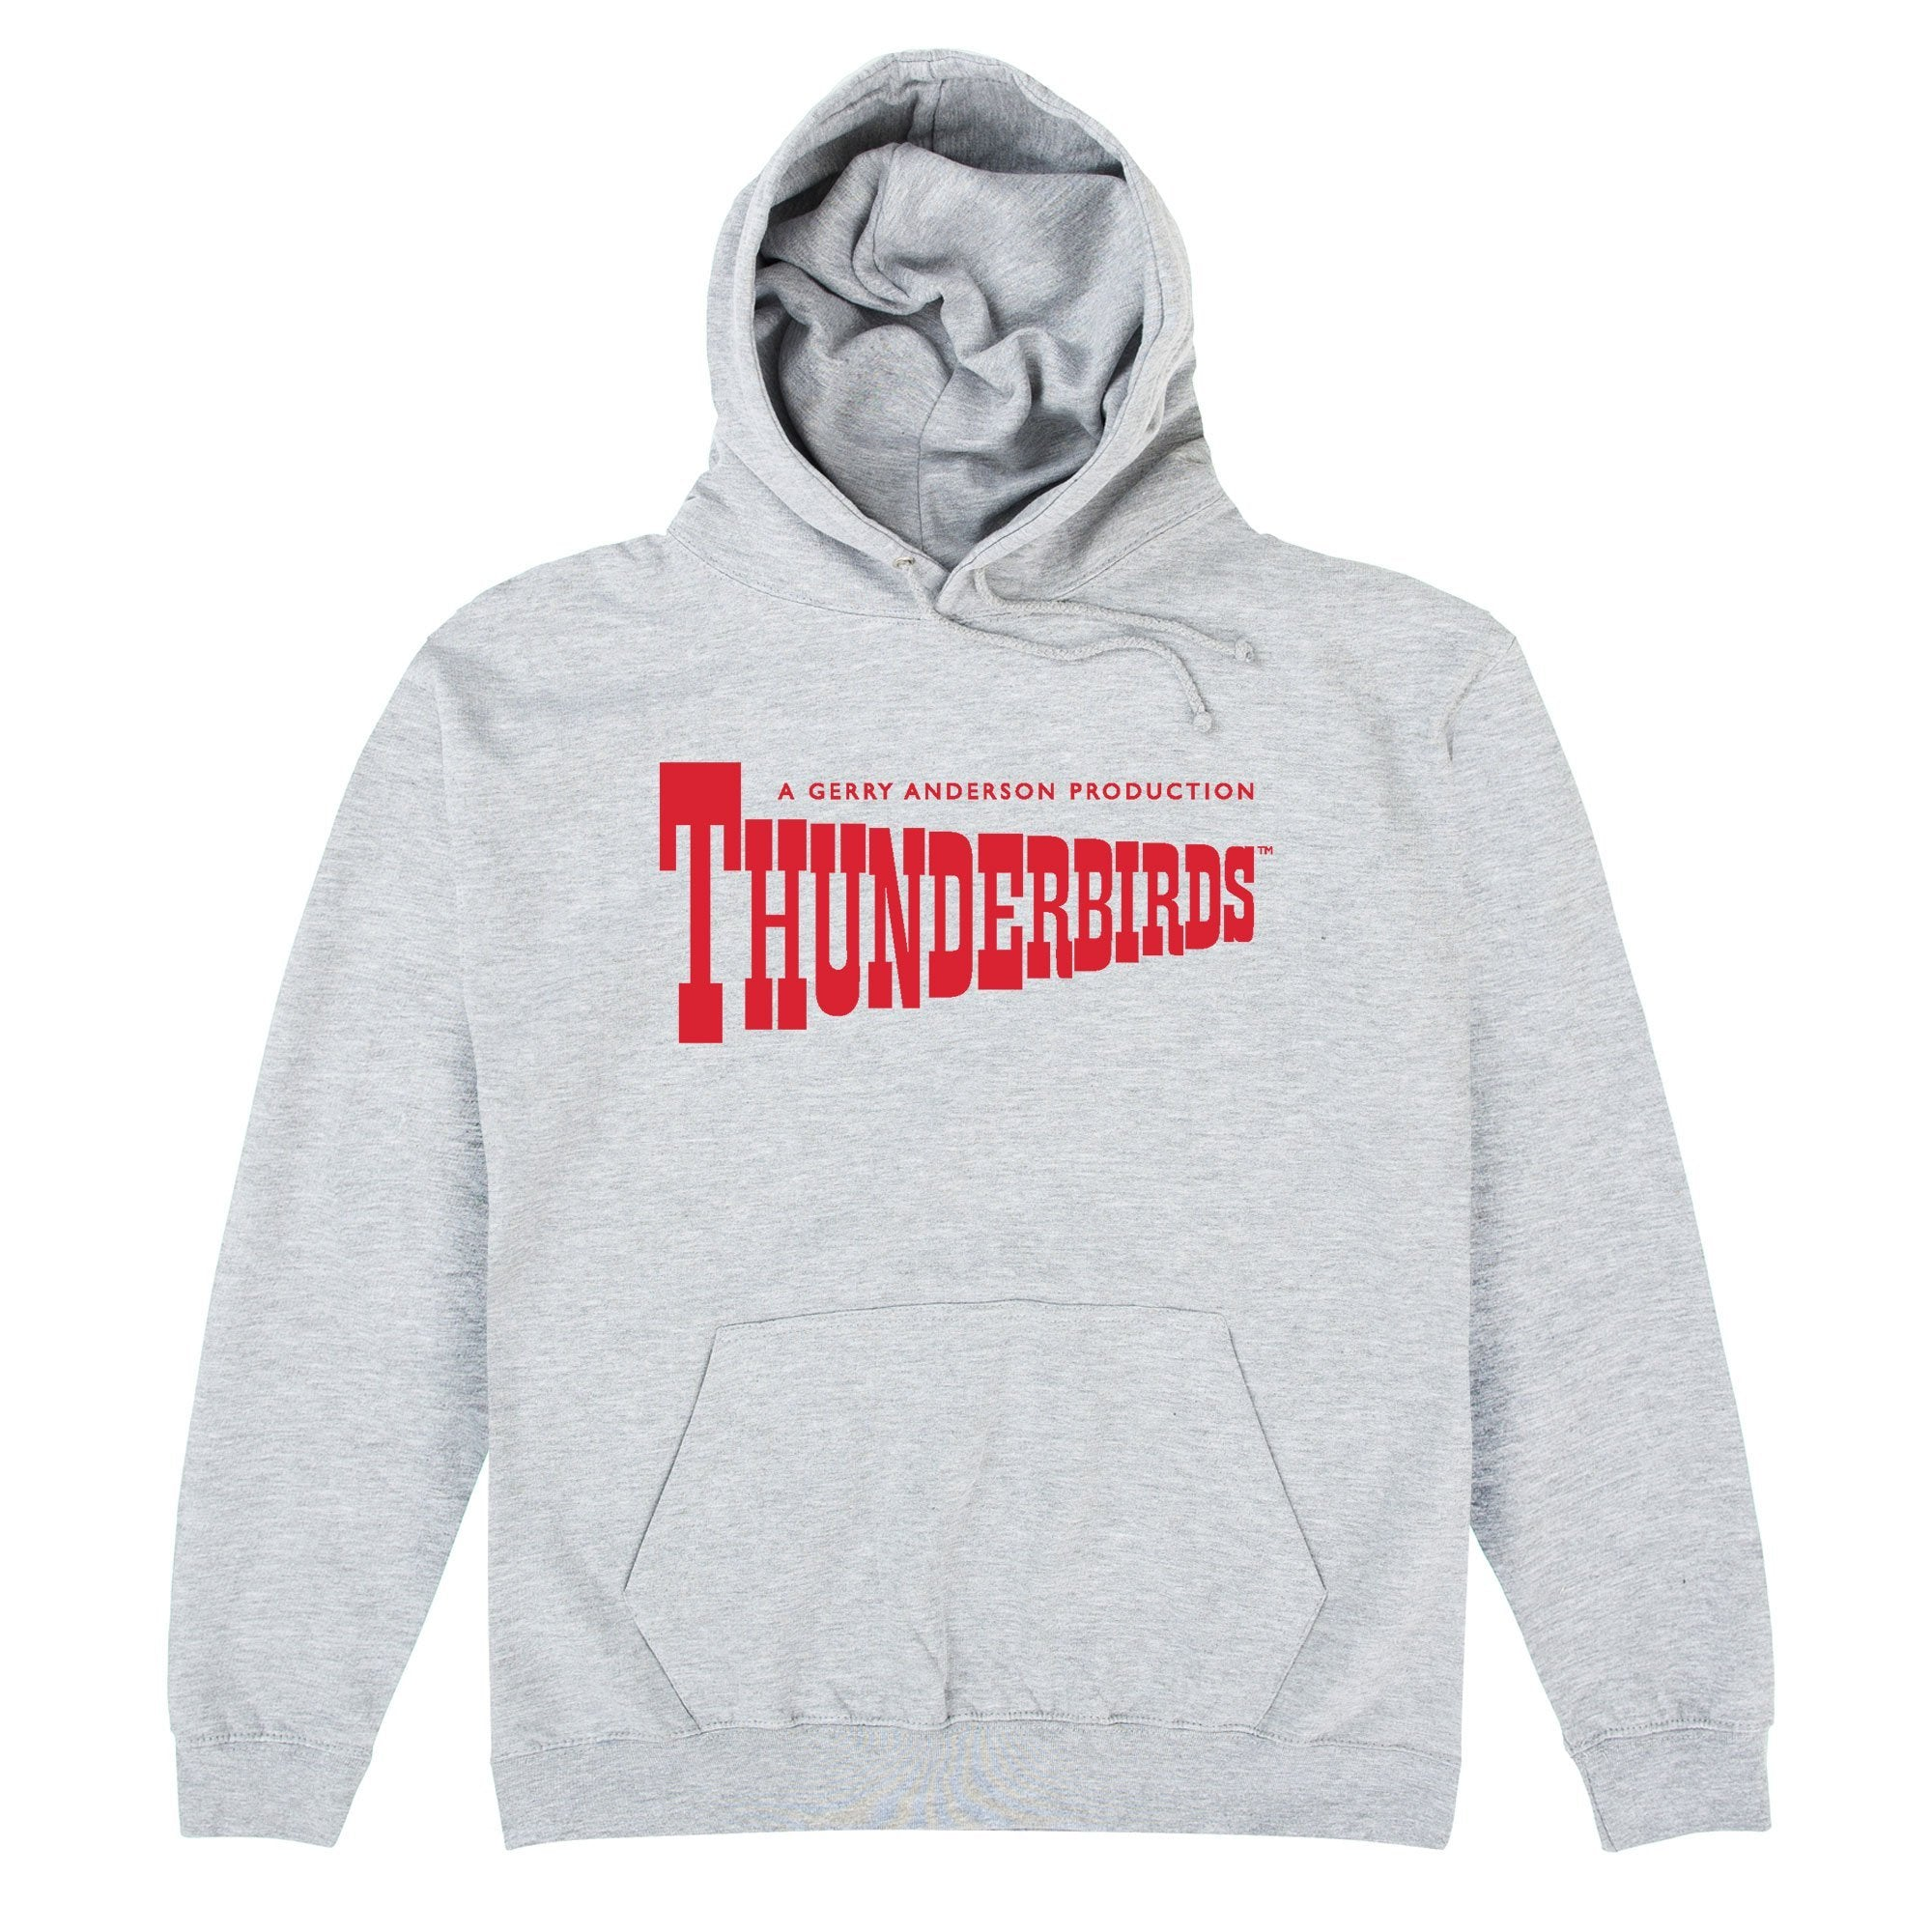 Thunderbirds Classic Logo Hoodie [Official & Exclusive] - The Gerry Anderson Store